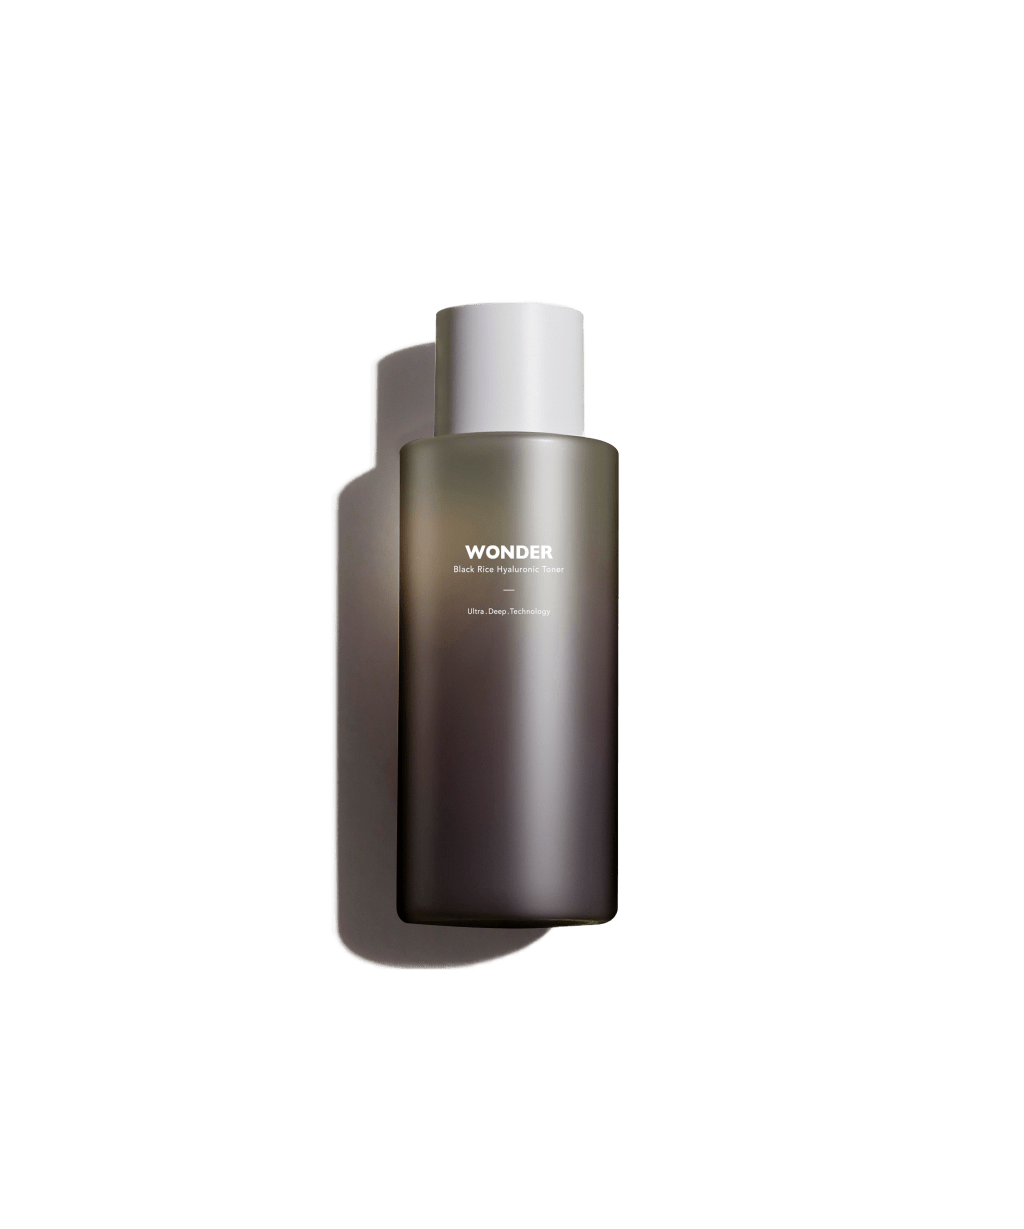 WONDER Black Rice Hyaluronic Toner 300ml